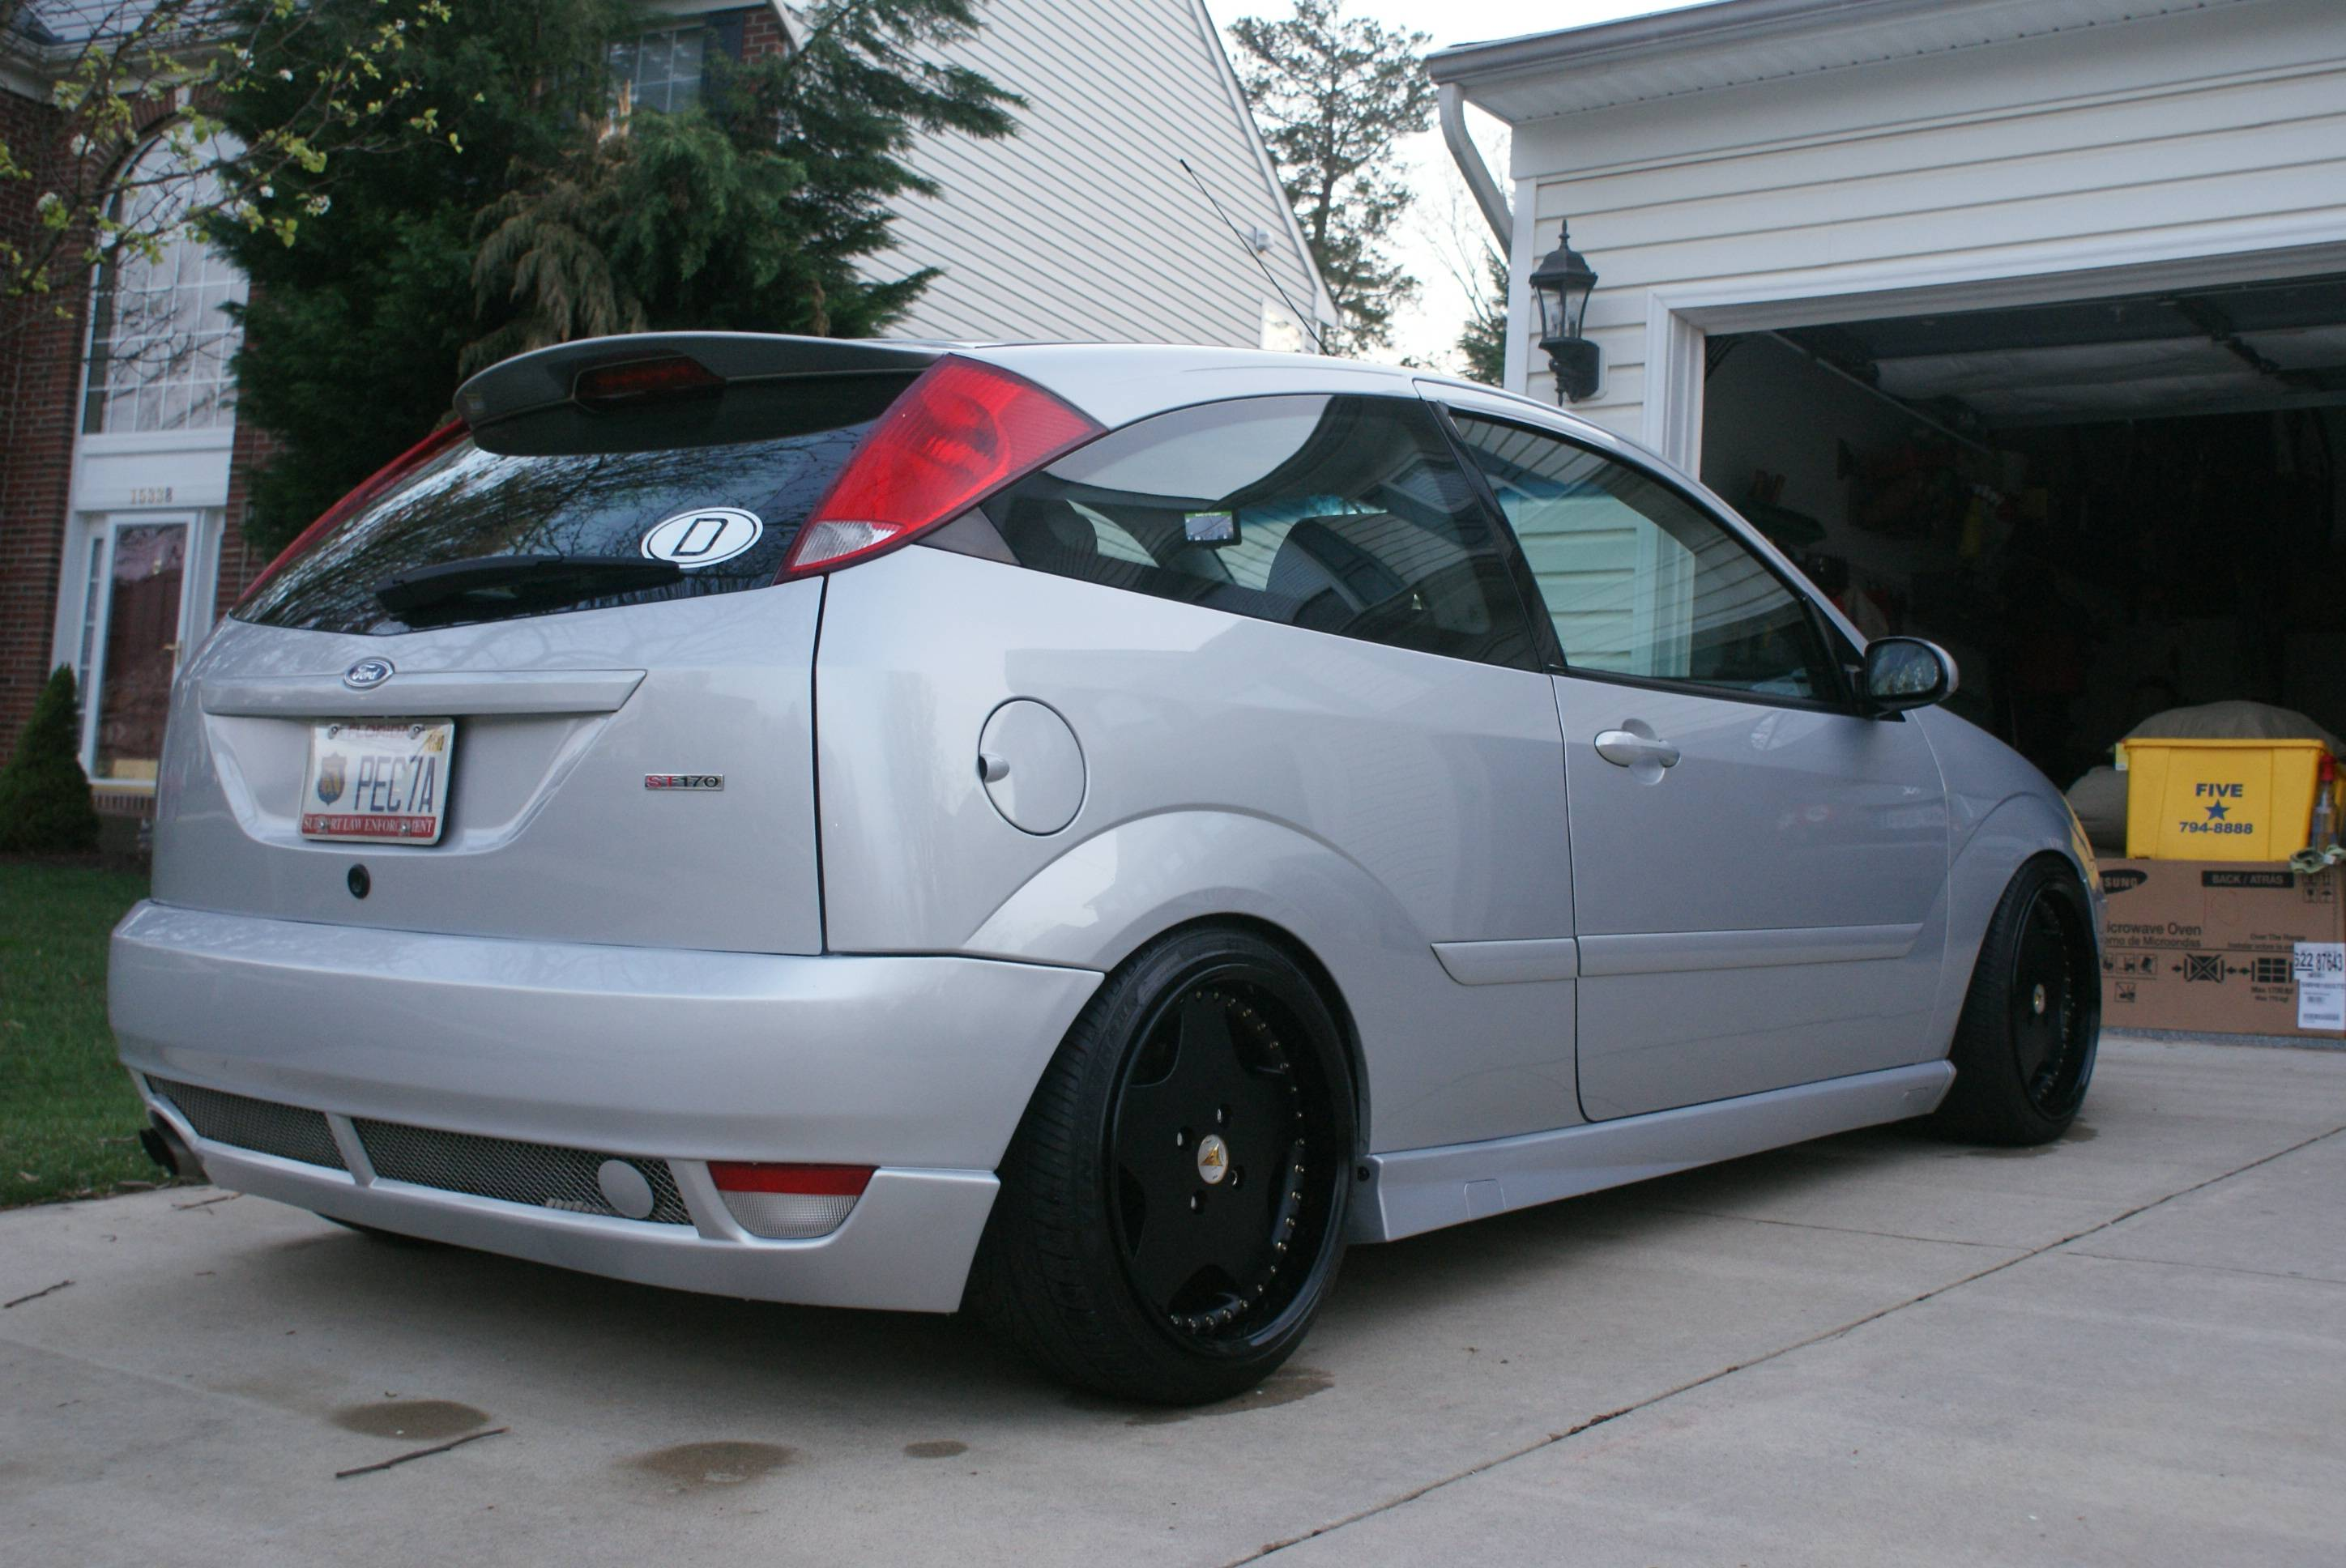 2001 Ford Focus Zx3 >> Let me see your SLAMMED/LOWERED Focus!... - Page 2 - Ford Focus Forum, Ford Focus ST Forum, Ford ...